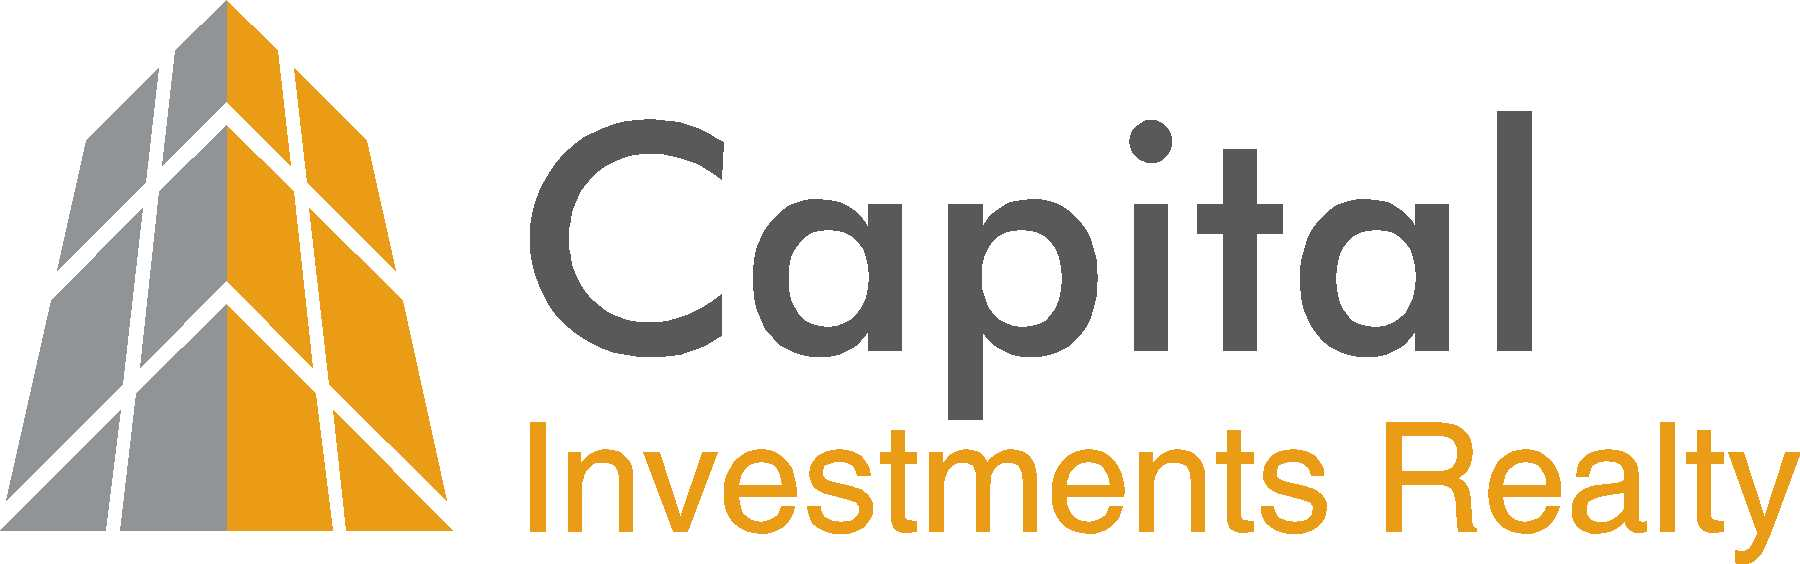 Capital Investments Realty Logo